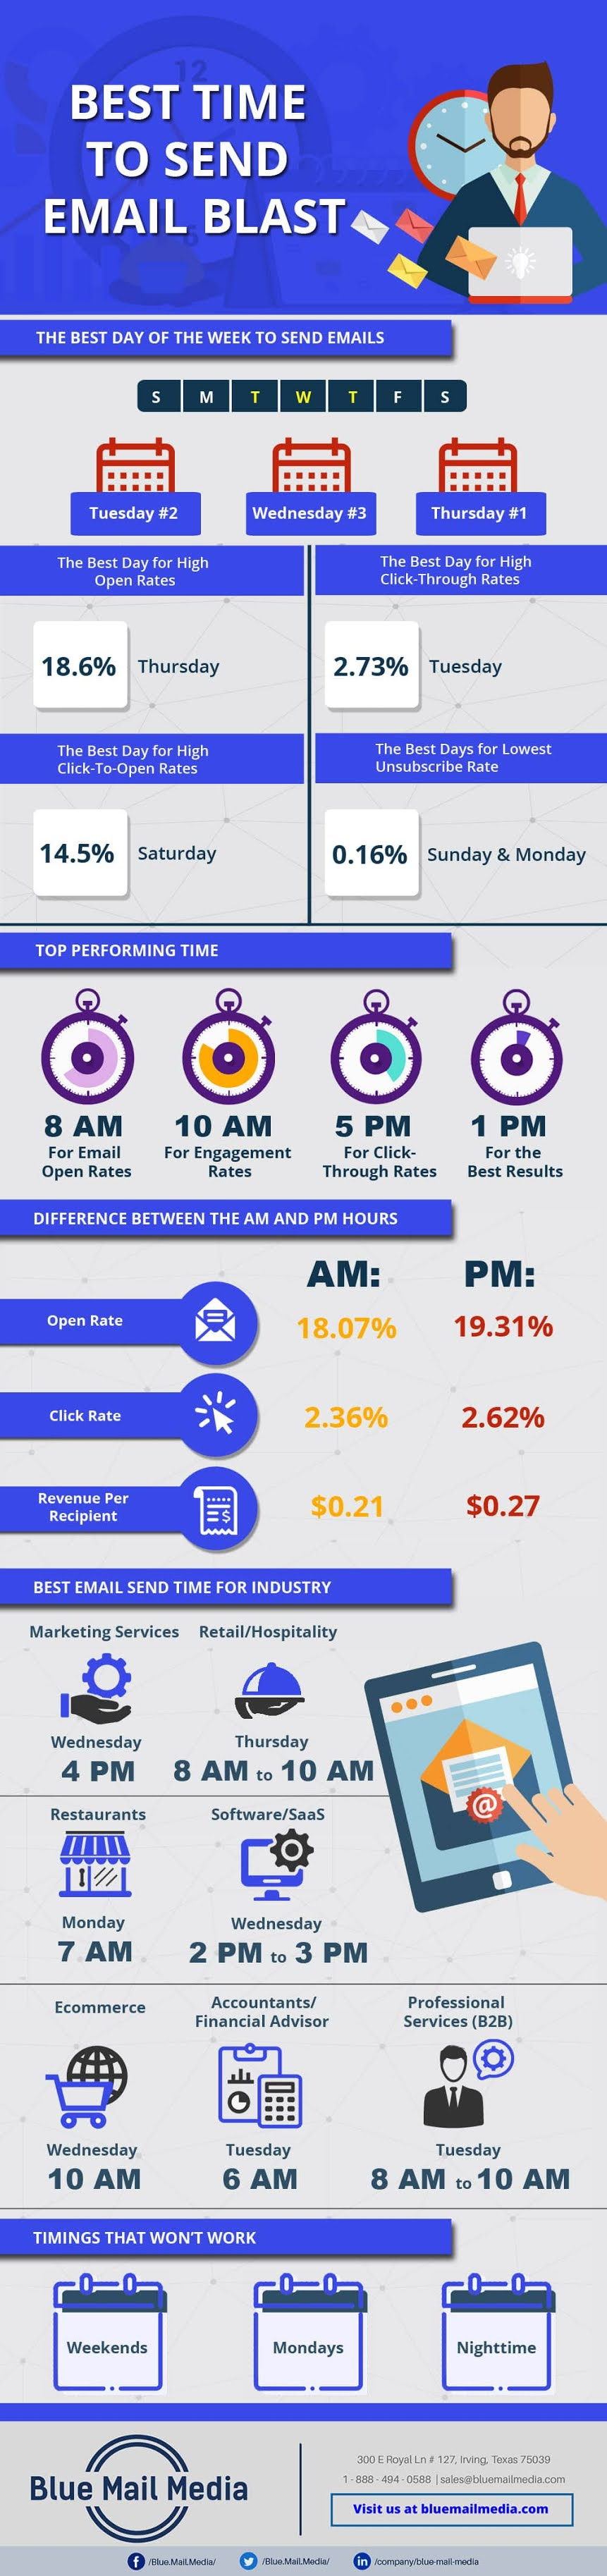 Best Time to Send an Email Blast #infographic